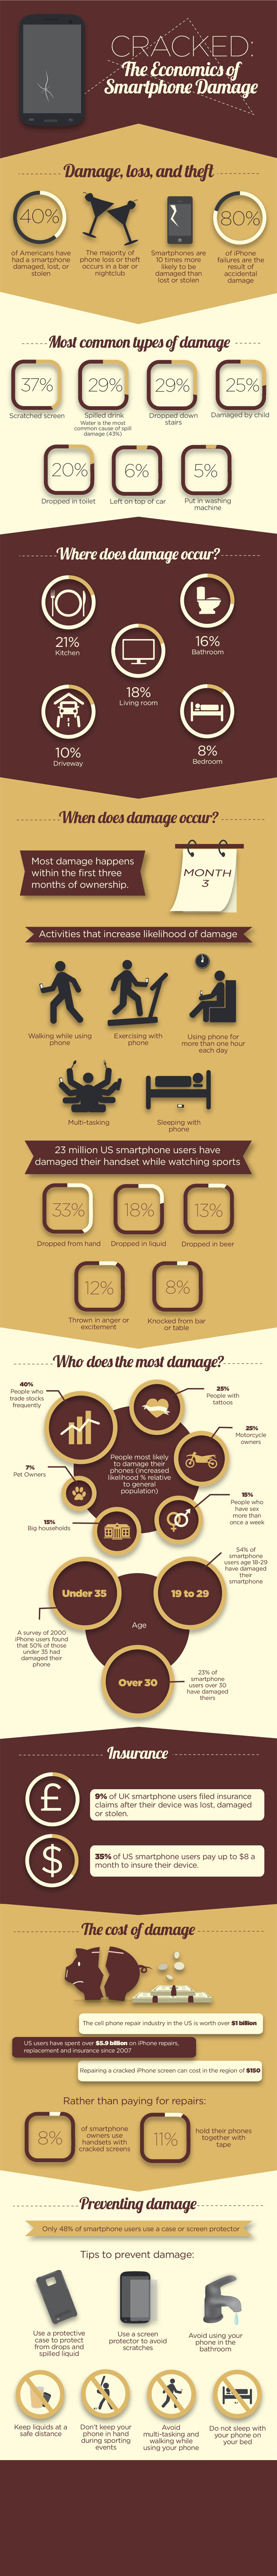 Cell-Phone-Smartphone-Damage-Prevention-Infographic